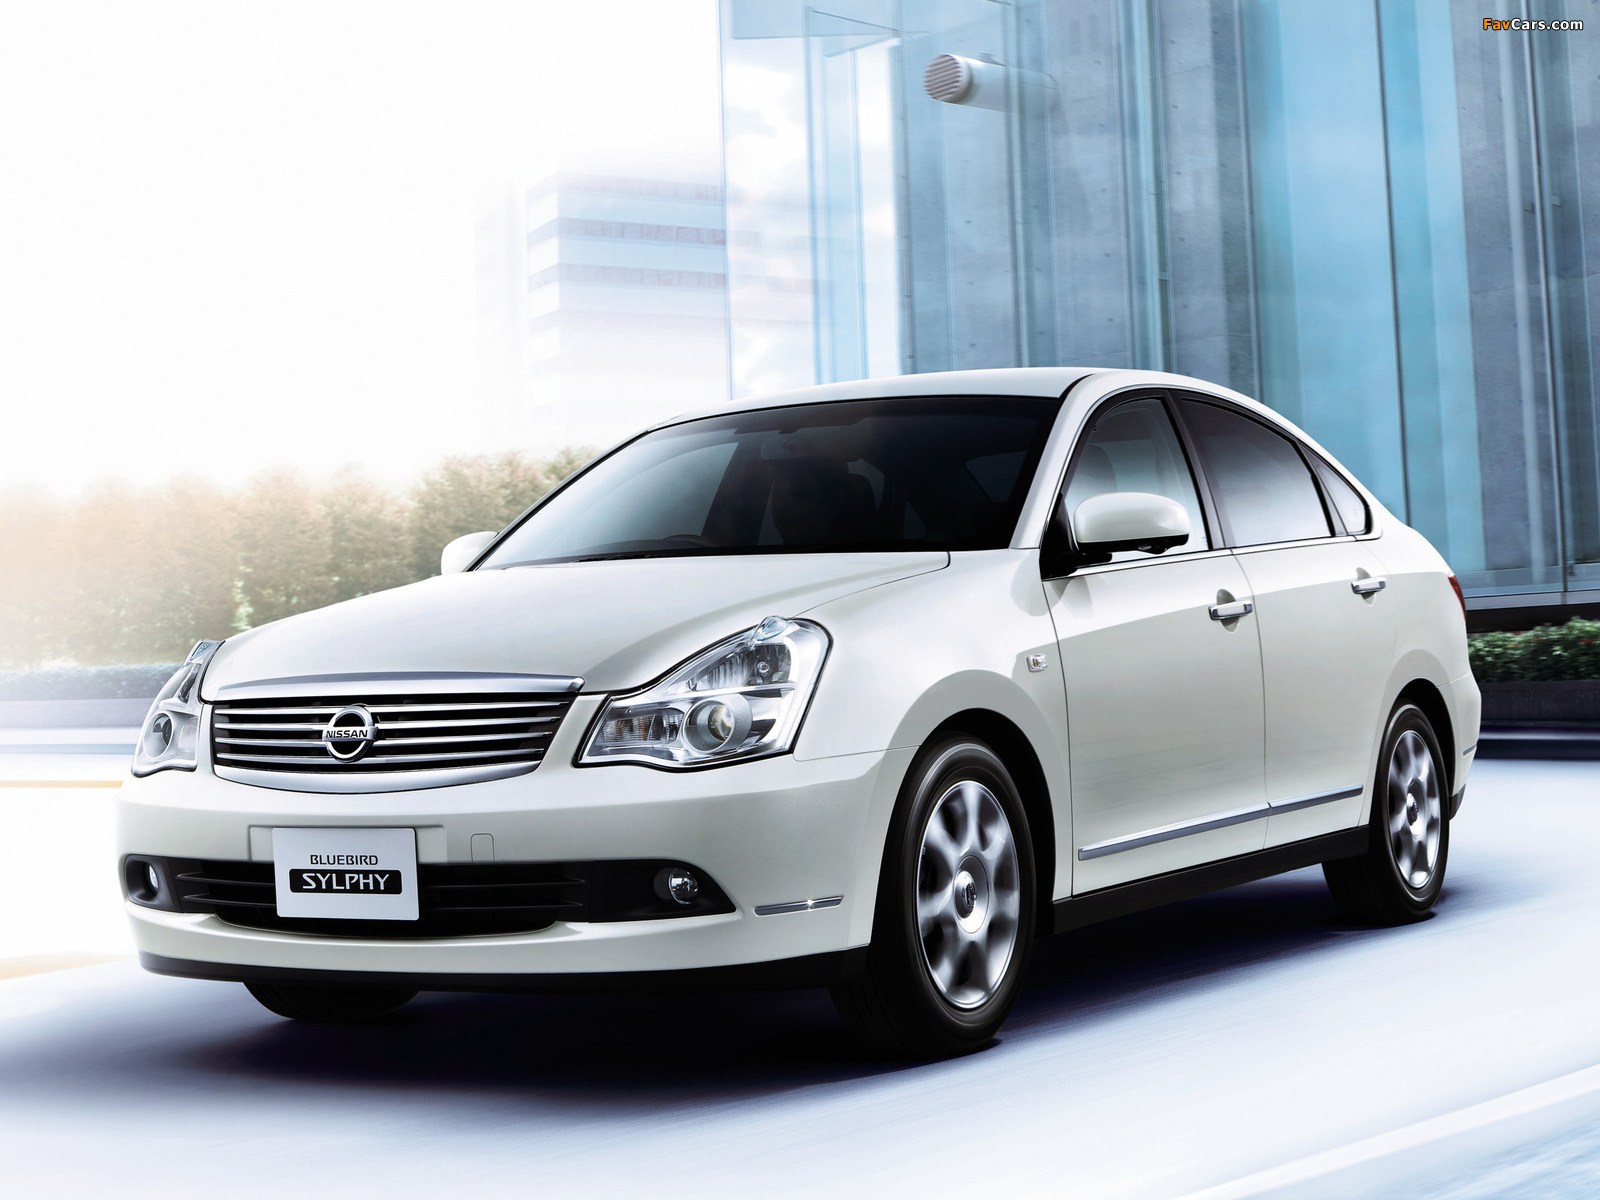 Nissan Bluebird Sylphy (G11) 2005 pictures (1600 x 1200)